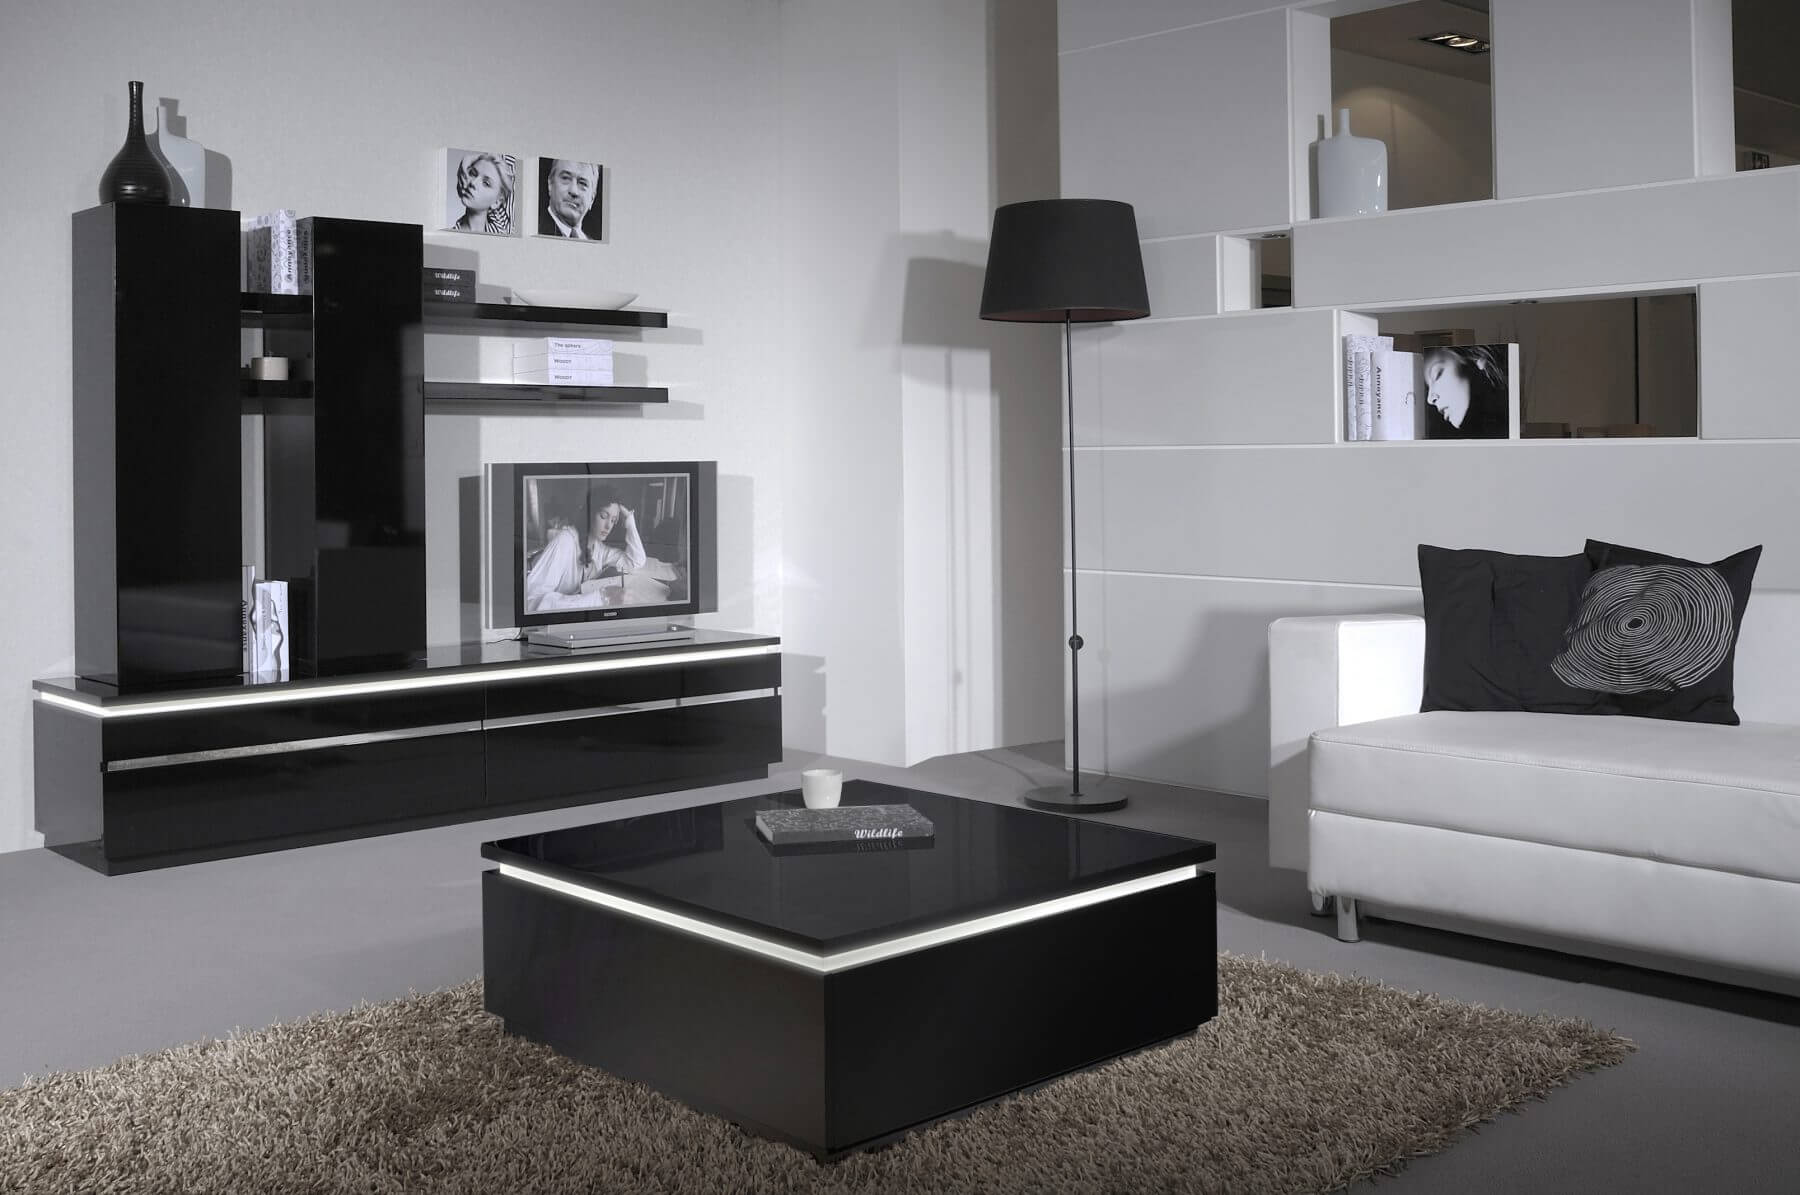 Logan High Gloss Black Coffee Table with Storage & Lights